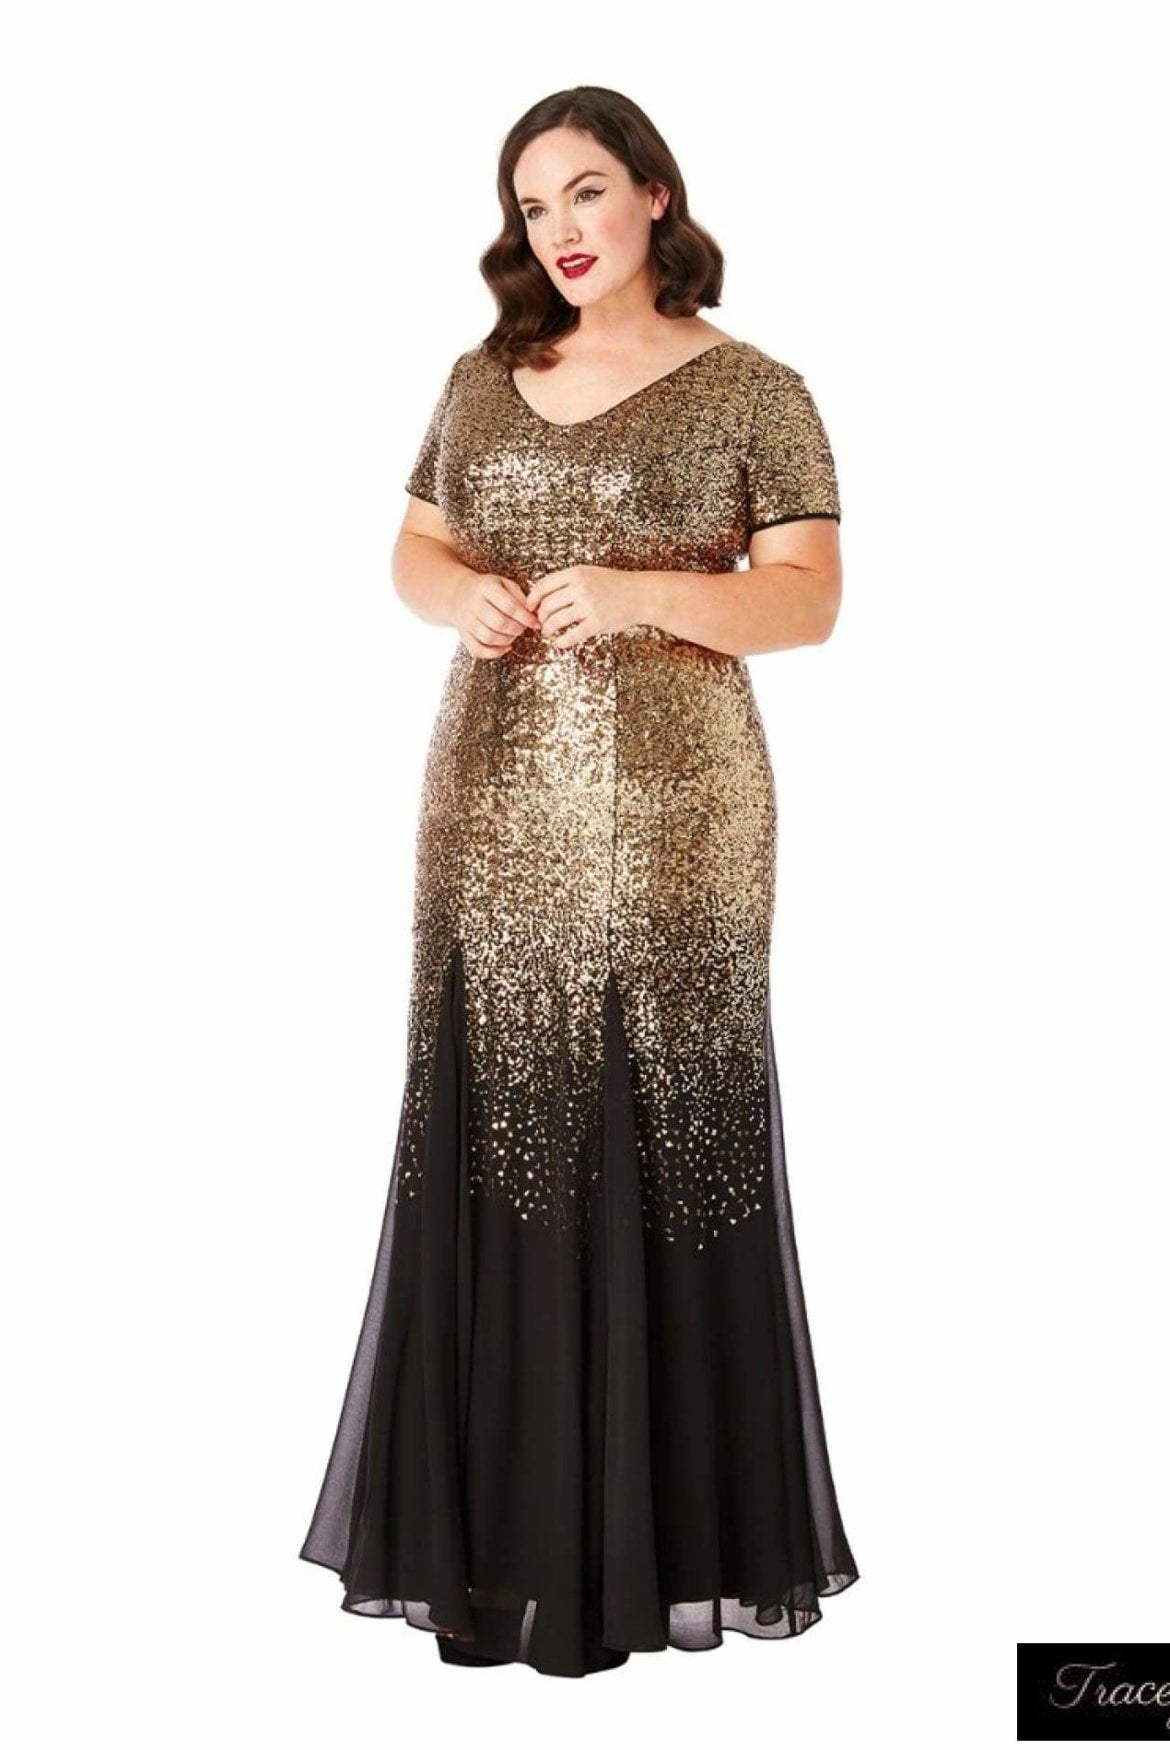 4d98a49a7ad Black And Gold Dresses   Target